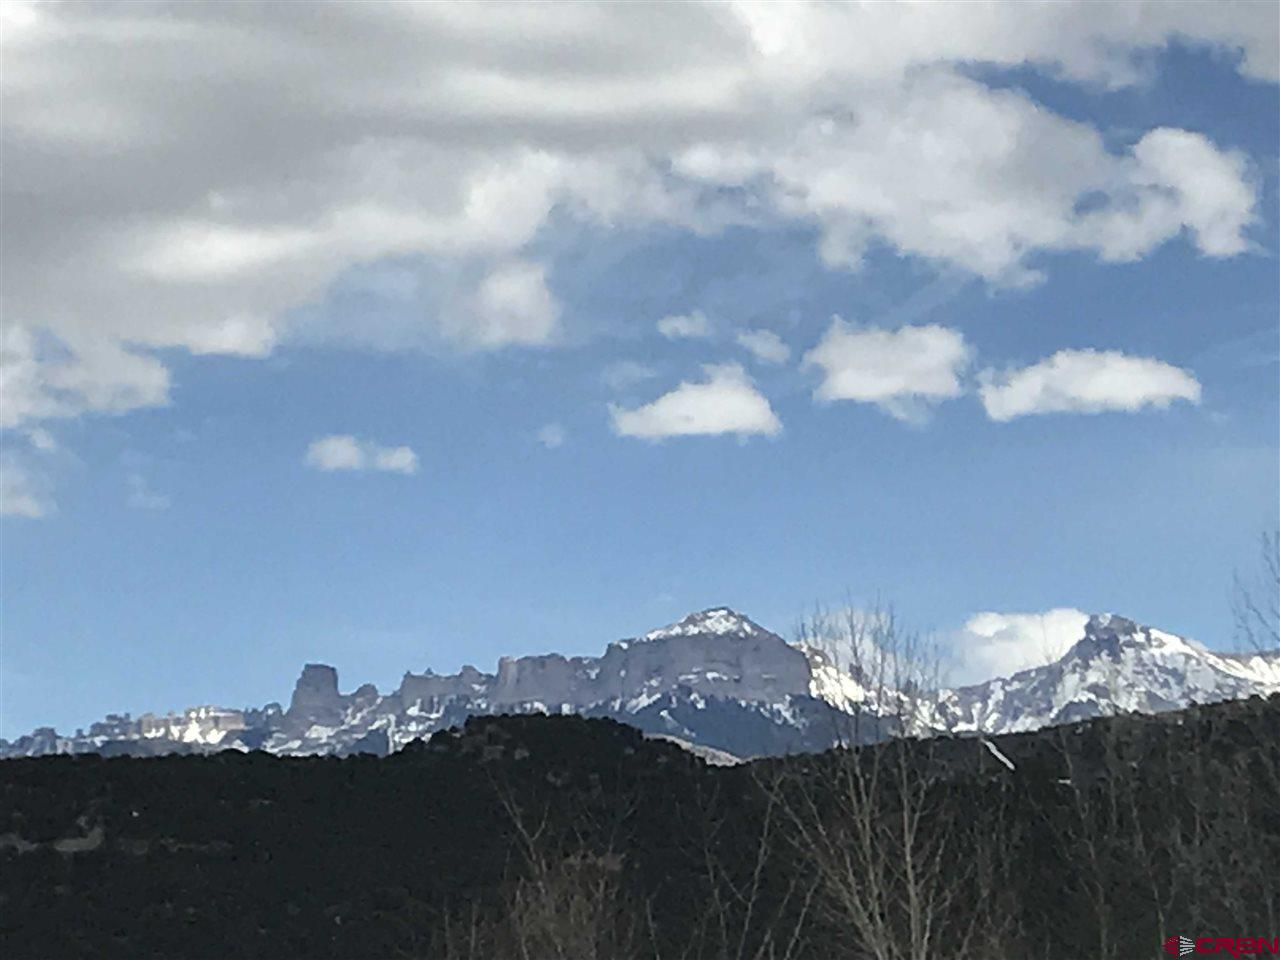 25,483 square feet of commecial land located in downtown Ridgway near the river.  This property is prime for development in bustling Ridgway.  Great location South of Liddell allows tons of potential from cannabis distribution to residential development or multi-use.  All utilities are adjacent to the property. great river and mountain views.